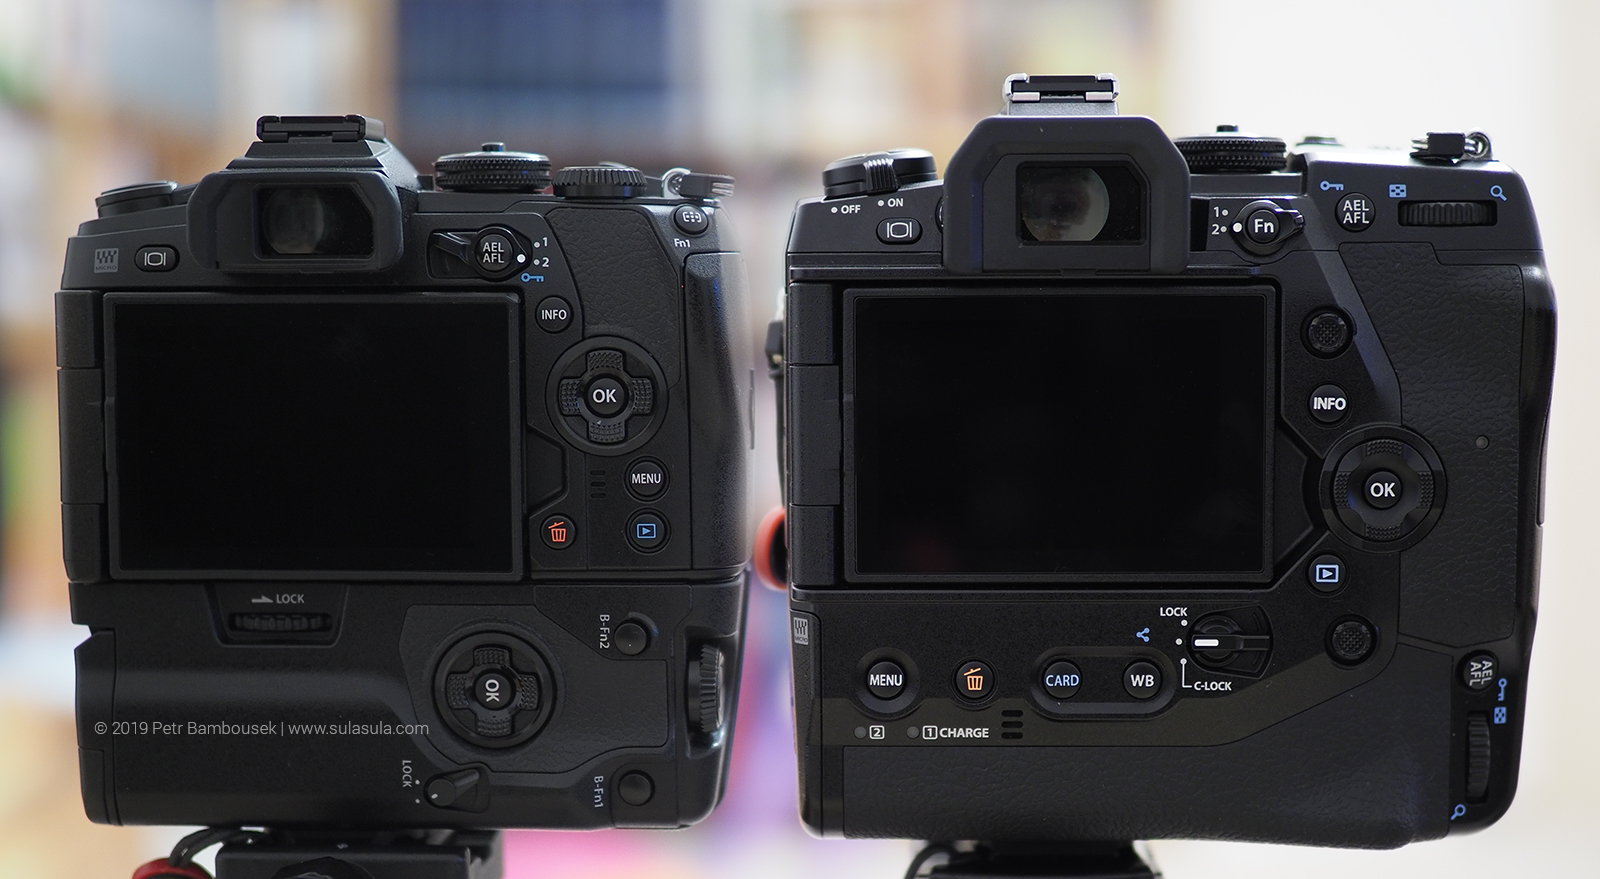 Side by side comparison of Olympus E-M1 Mark II with grip (left) a Olympus E-M1X (right)